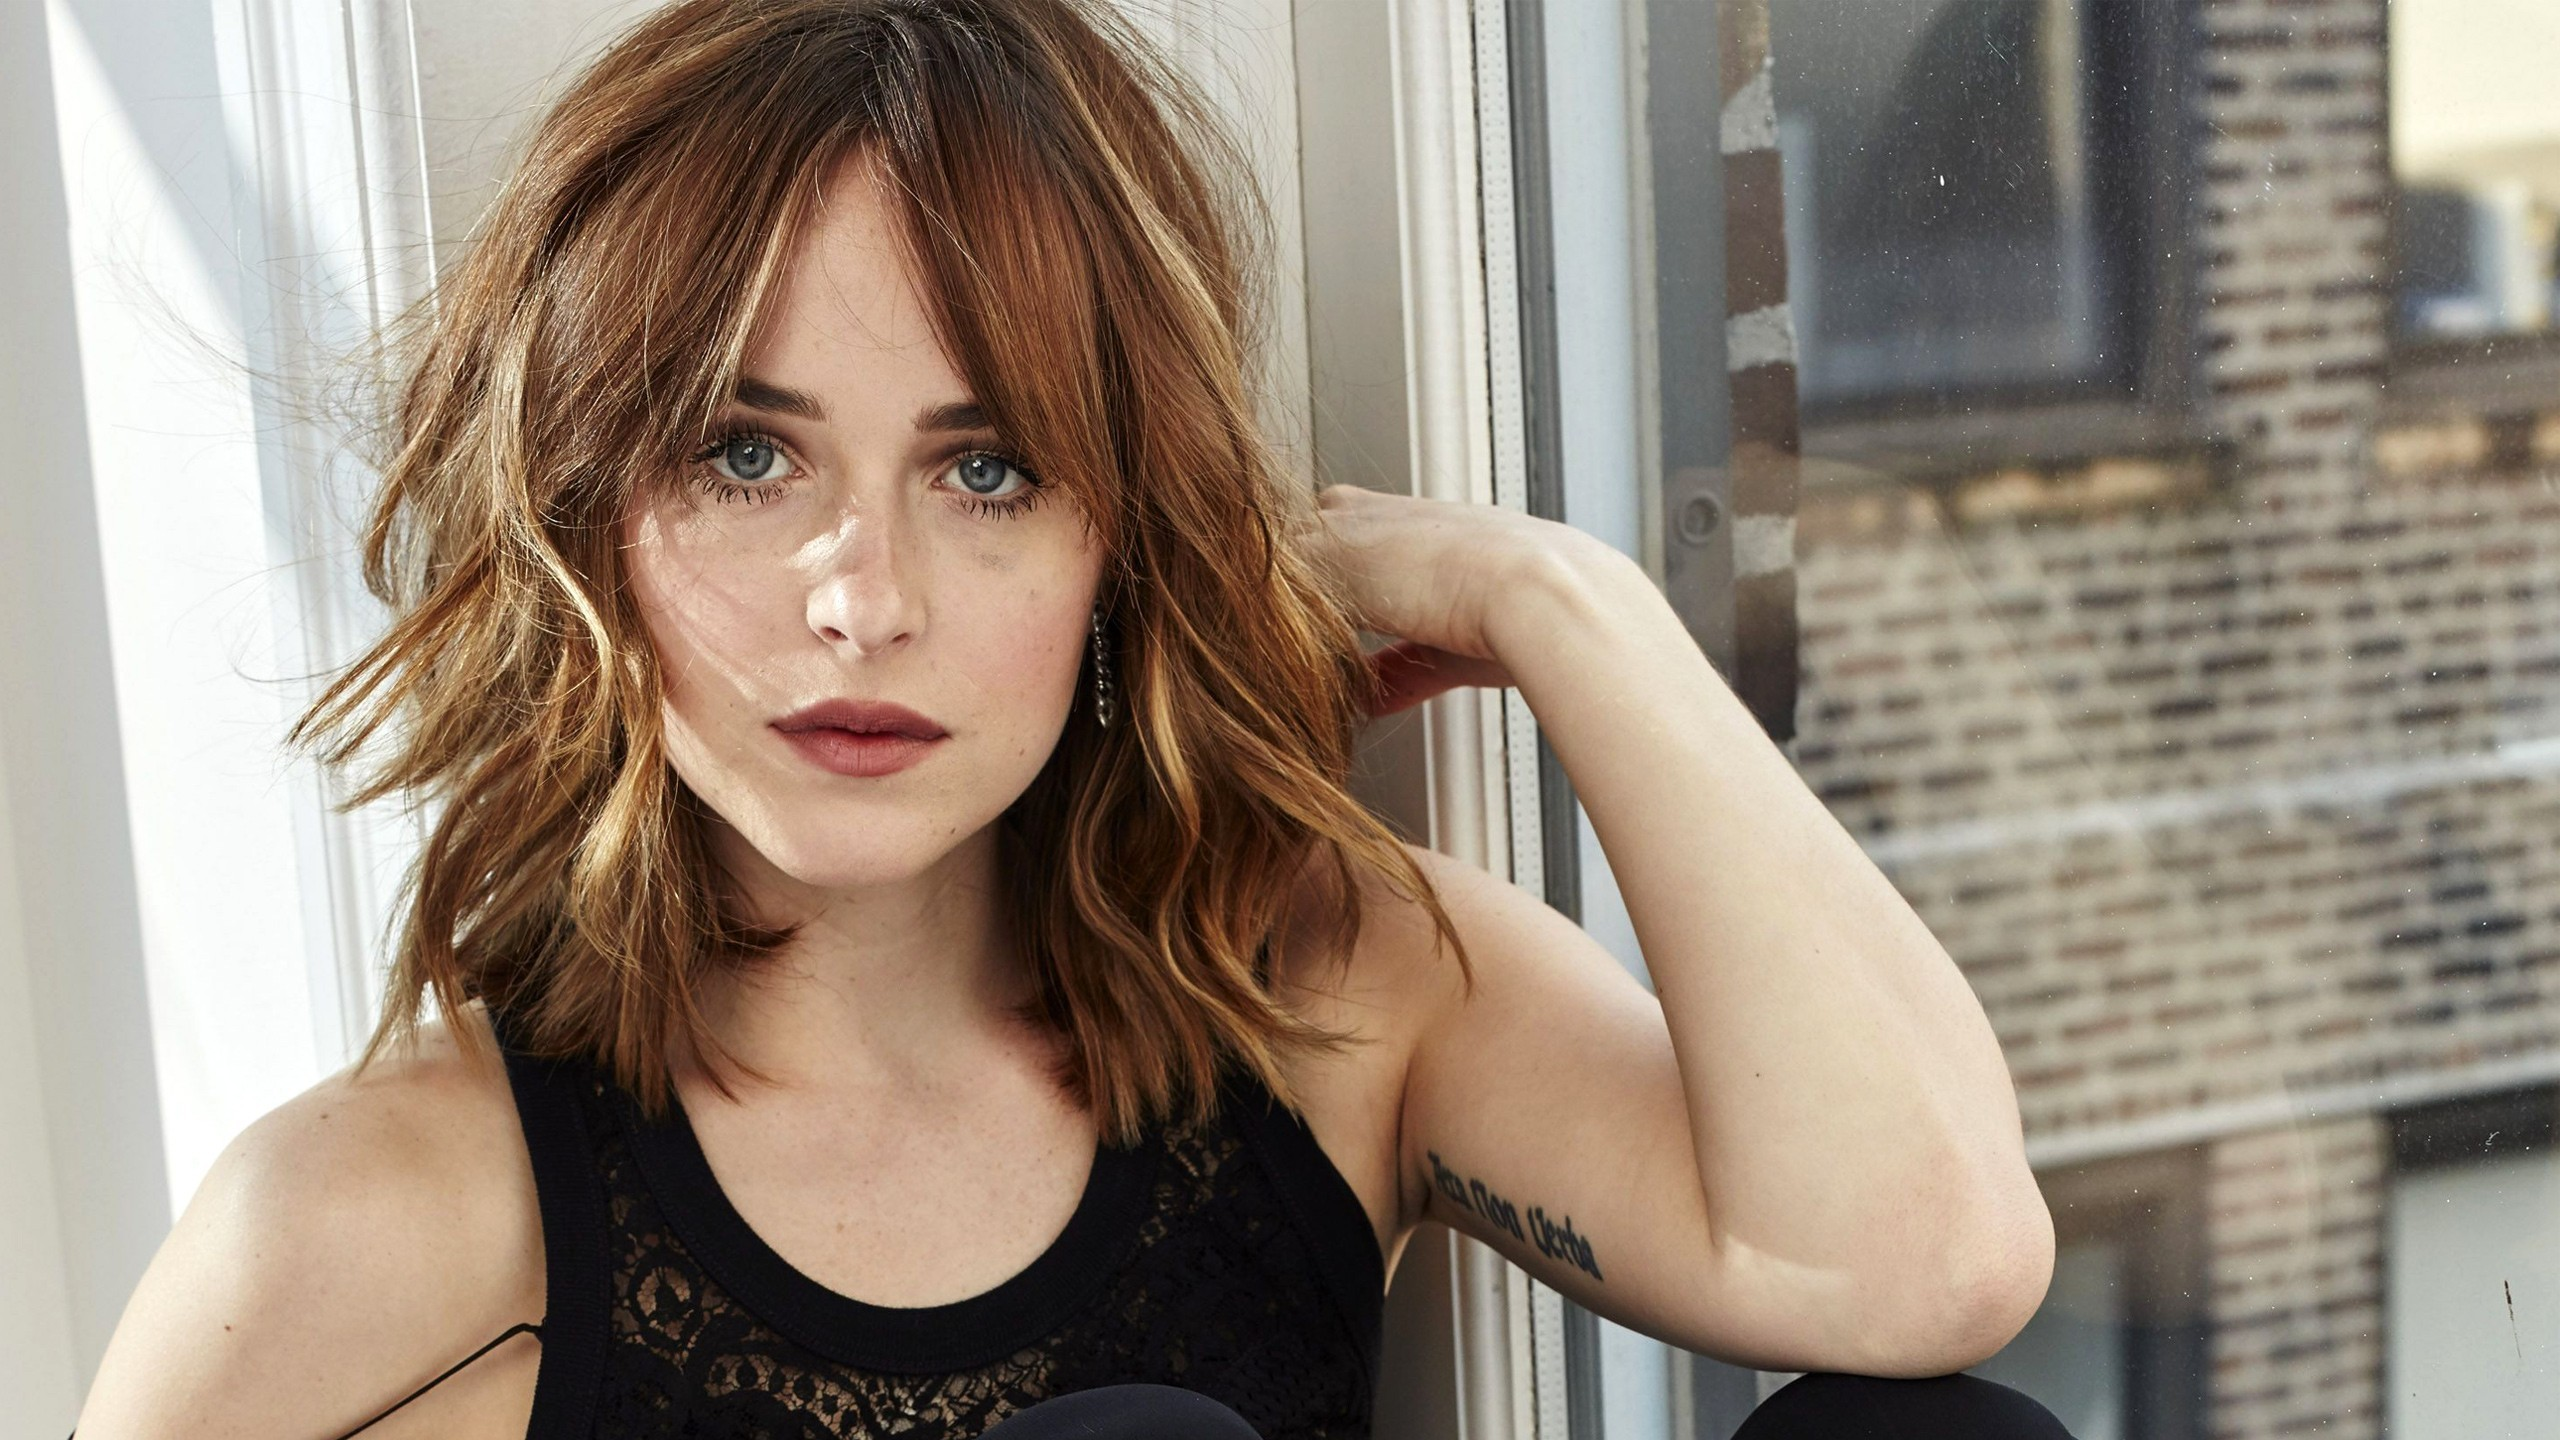 Women Celebrity Dakota Johnson 2560x1440